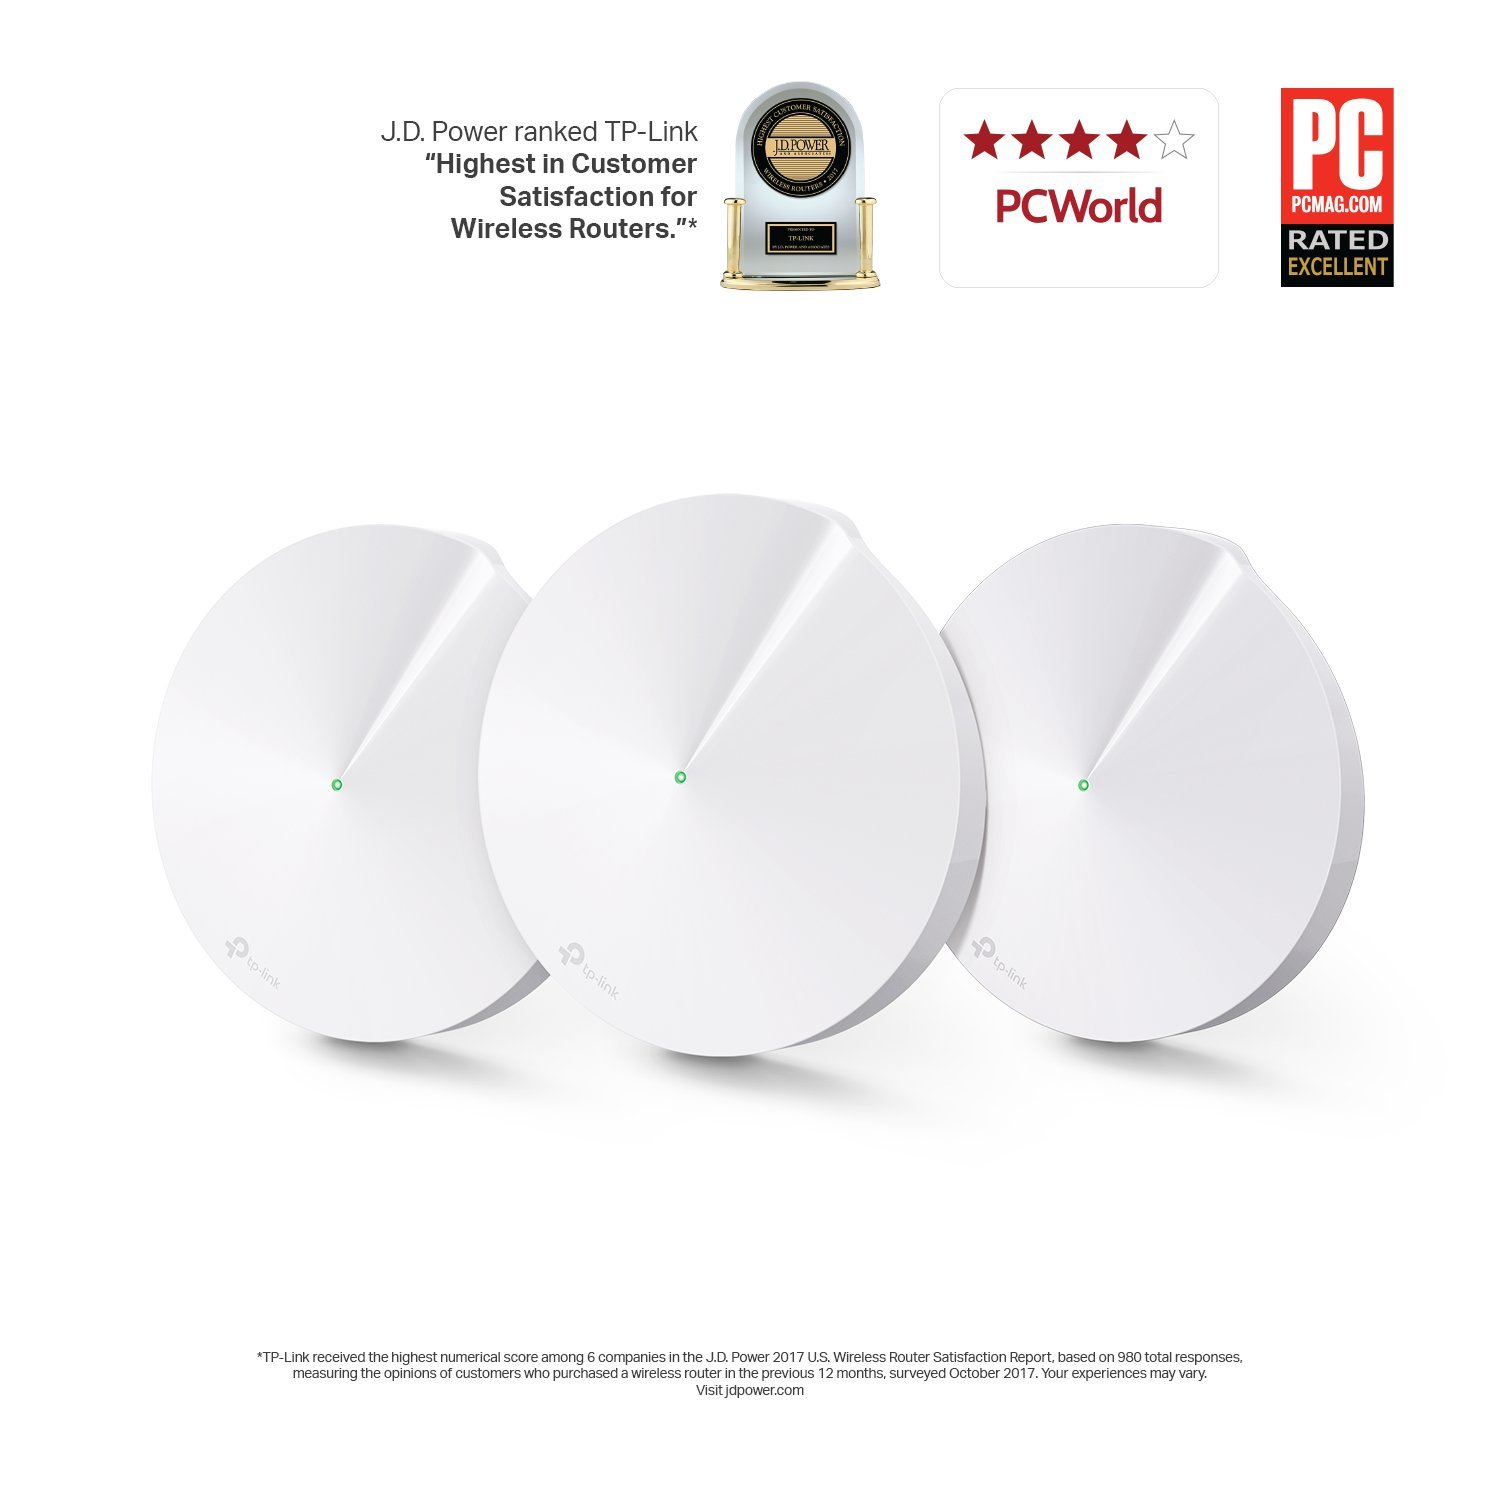 TP-Link Deco Whole Home Mesh WiFi System (3-Pack) - Replace WiFi Router and Range Extenders, Simple Setup, Works with Amazon Alexa, Up to 4,500 sq. ft. Coverage (M5) by TP-Link (Image #2)